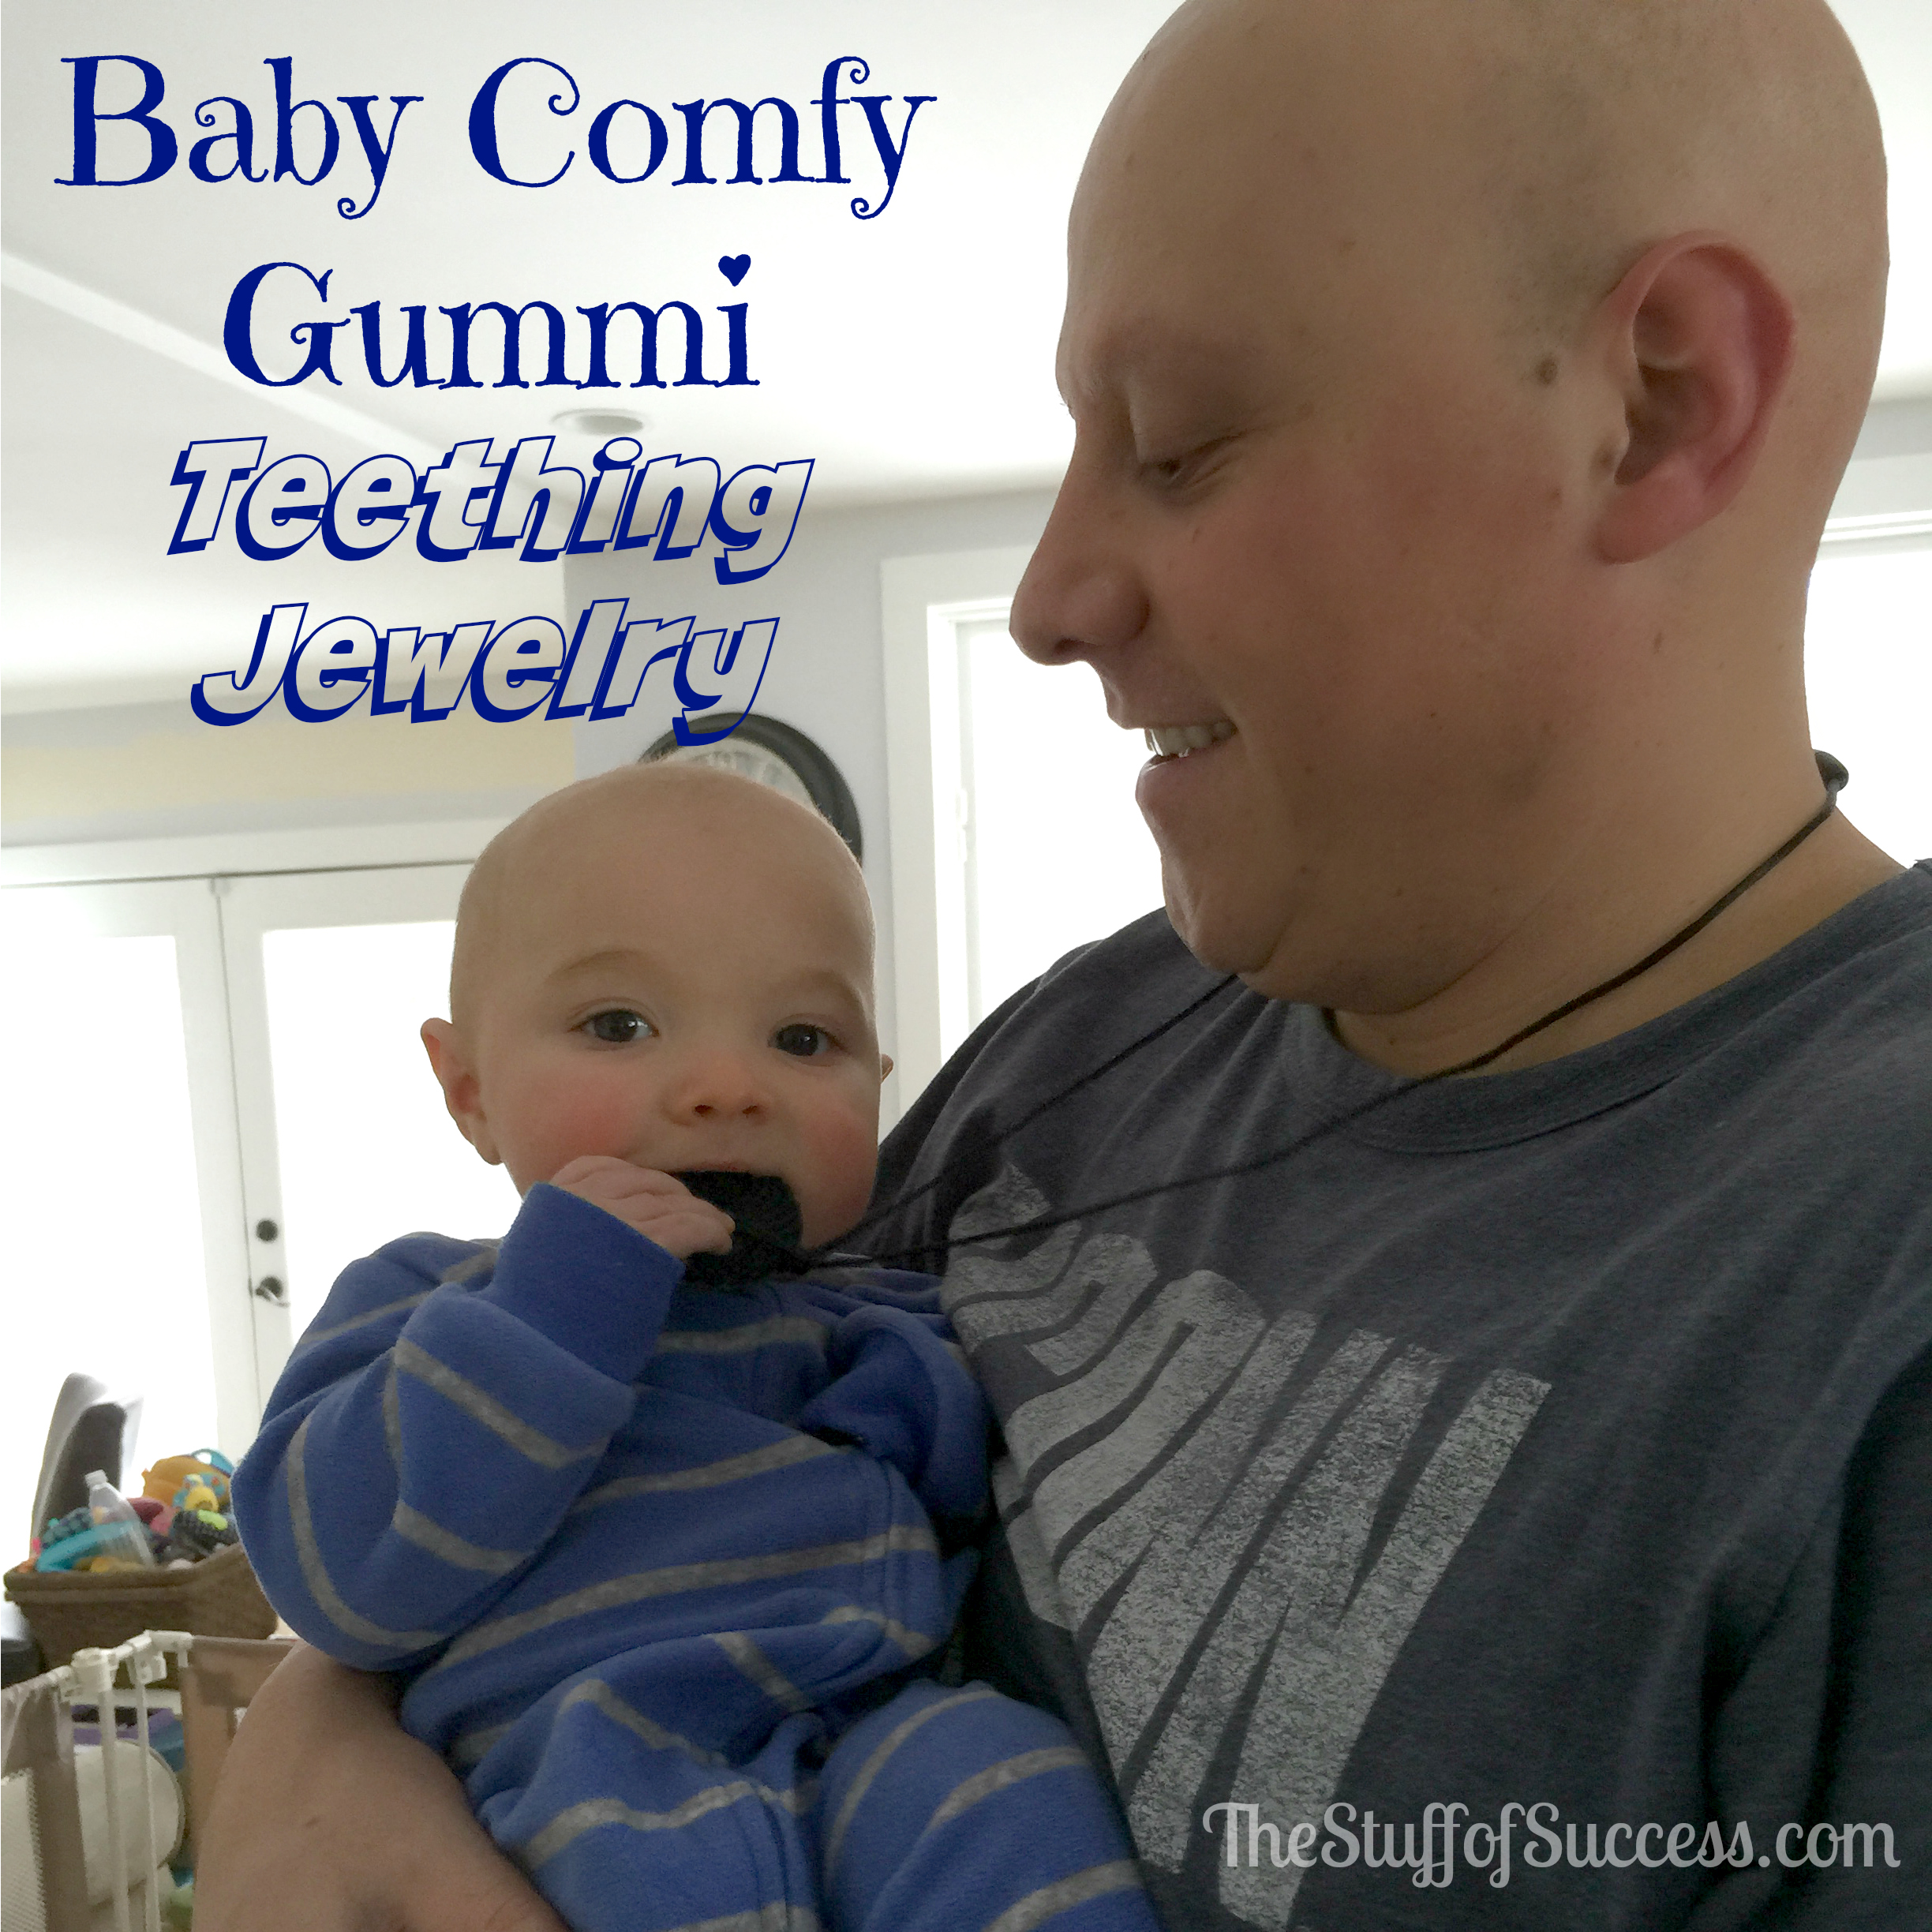 Baby Comfy Gummi Teething Jewelry In Action